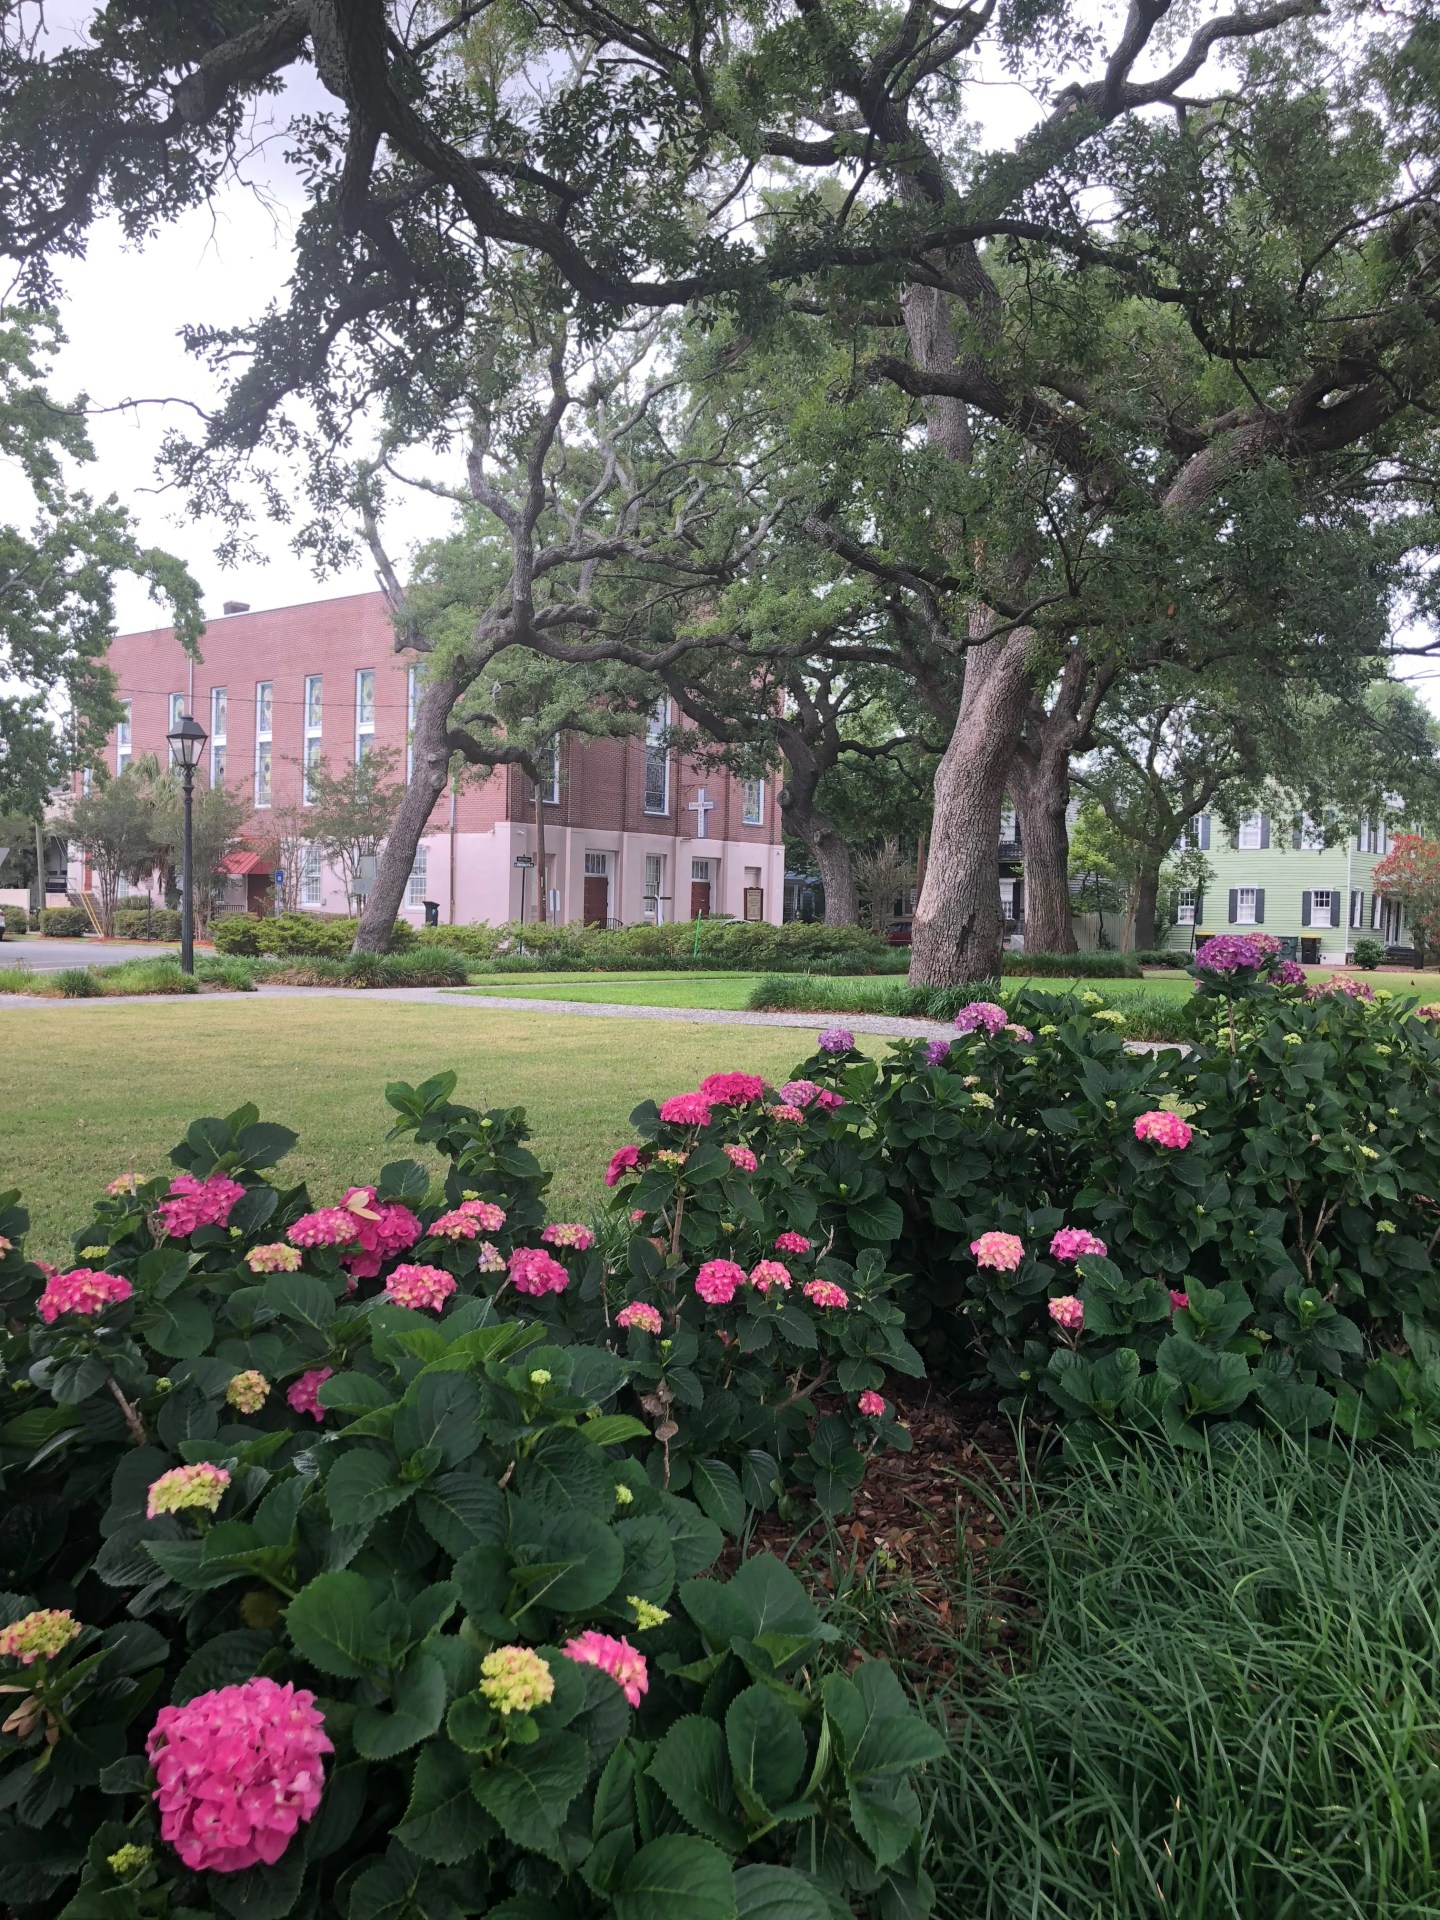 Lifestyle Blogger Chocolate and Lace shares her family trip to 24 Hours in Savannah, Georgia USA.